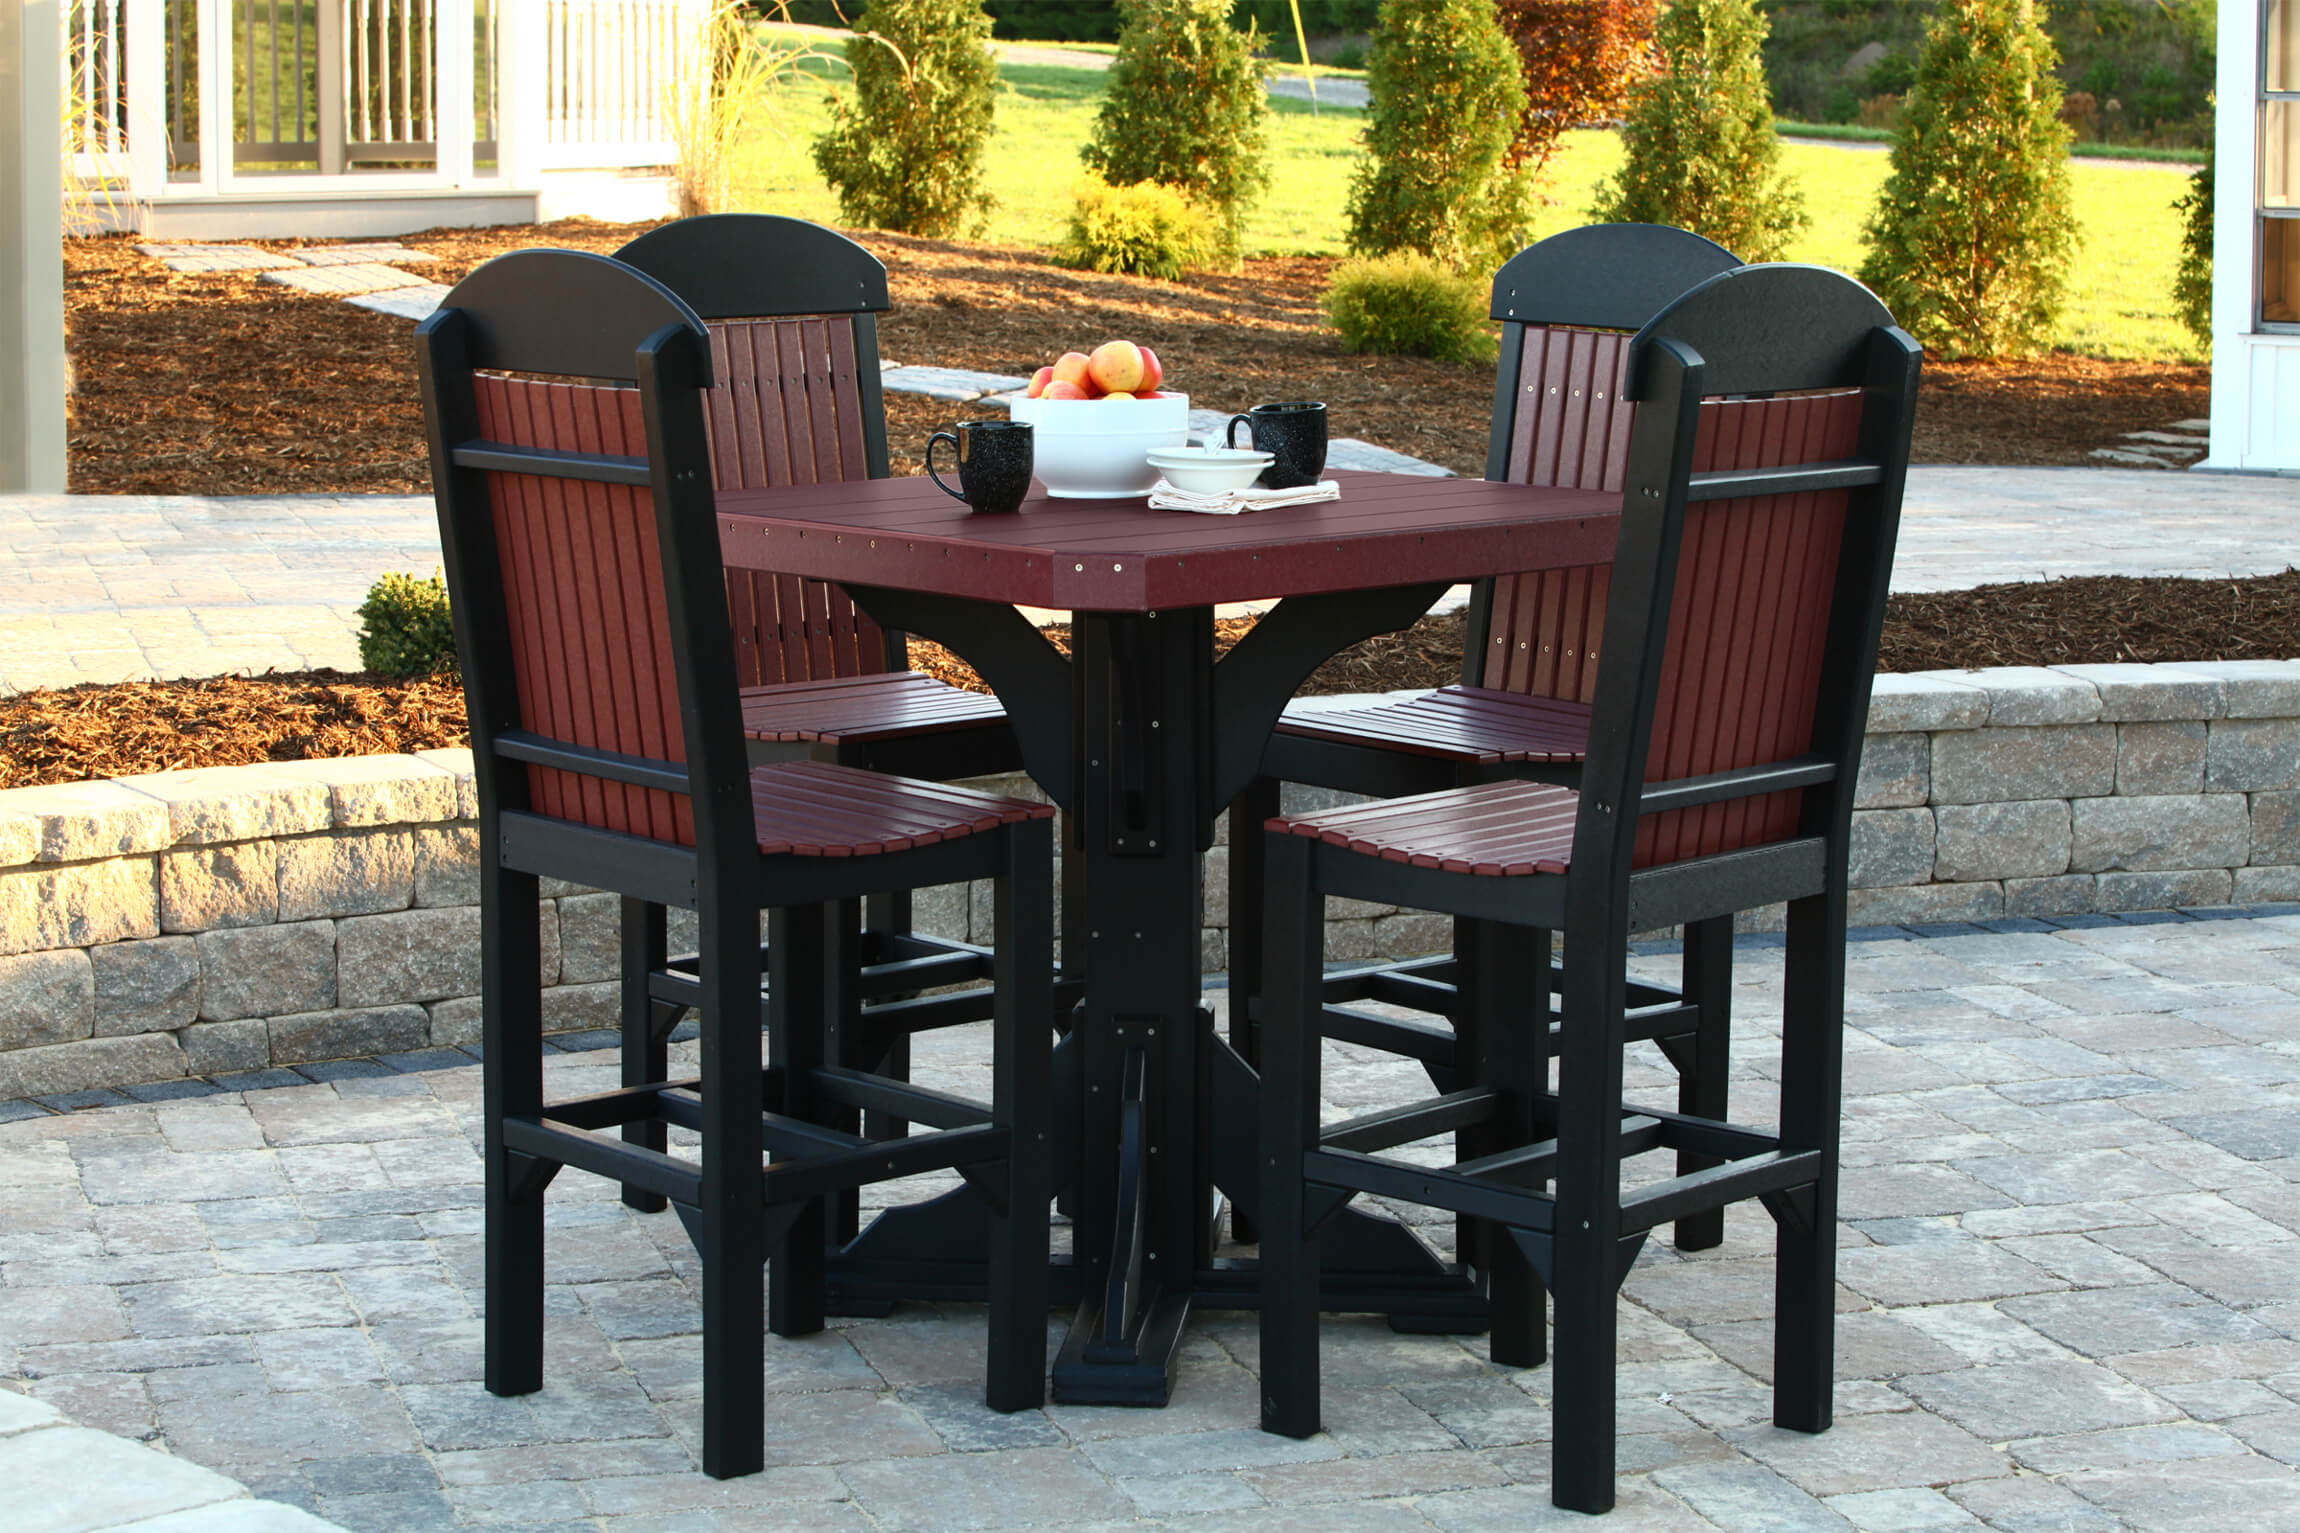 Outdoor Bars & Bar Stools